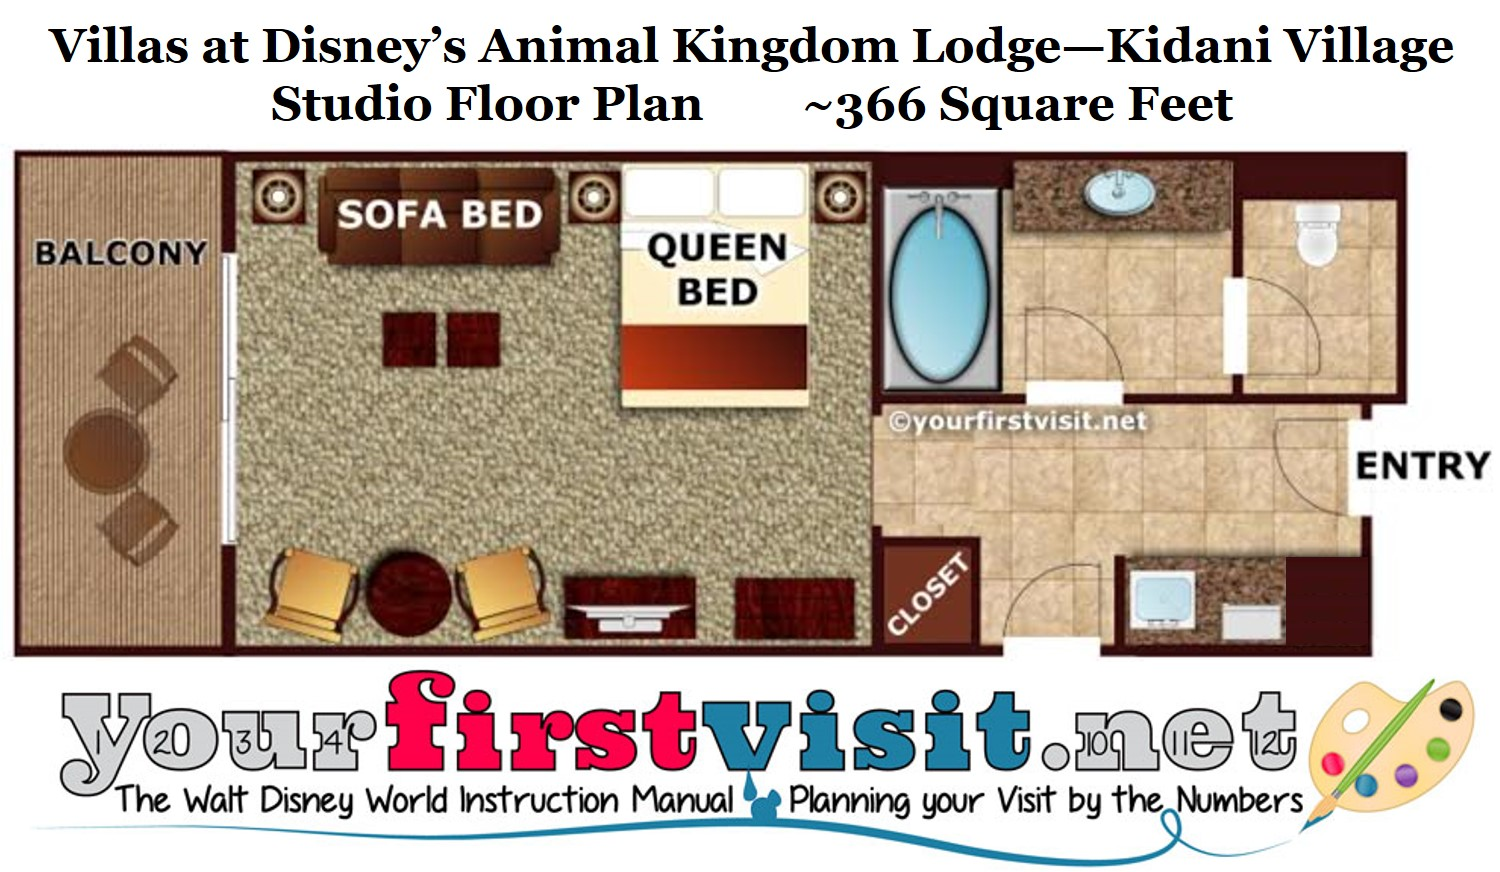 Theming And Accommodations At Disney S Kidani Village Yourfirstvisit Net